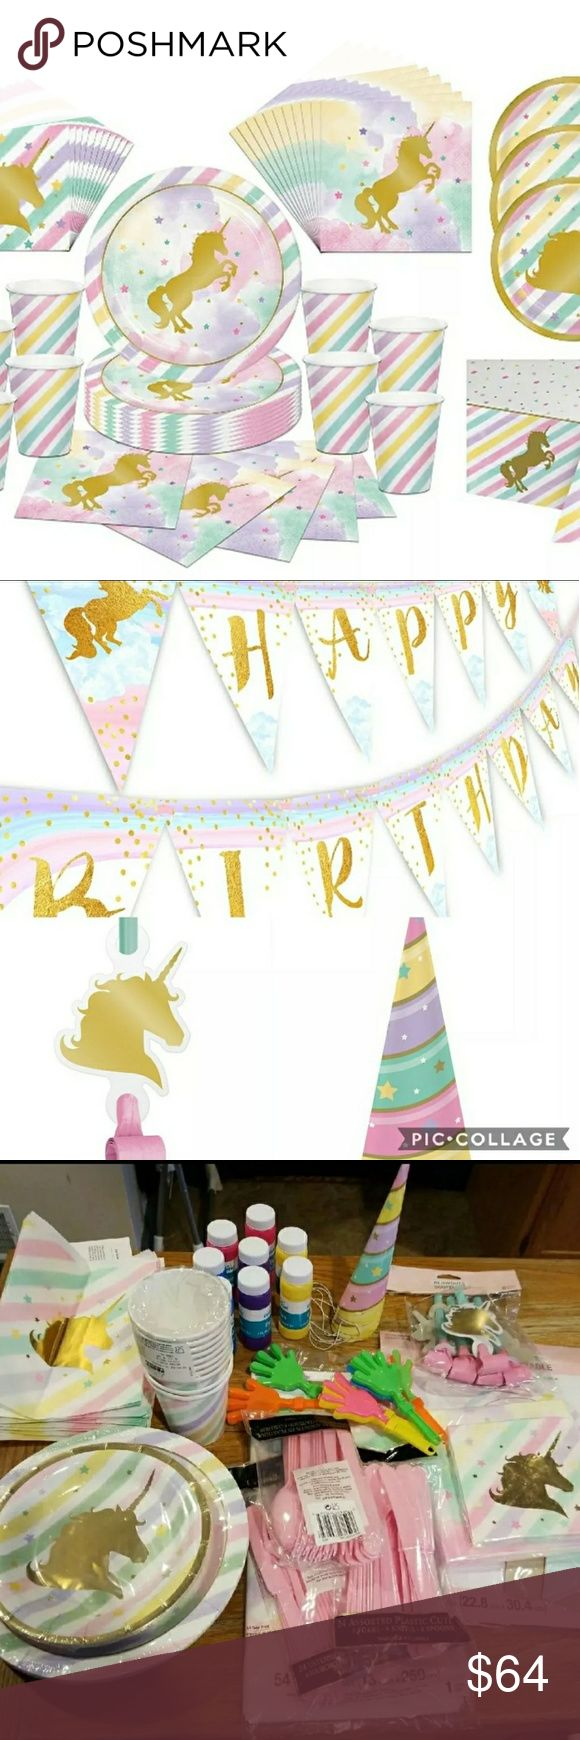 Unicorn Party Supplies 10 cups 16 lunch plates 8 dessert plates 16 lunch napkins 16 beverage napkins 6 party hats 6 blow outs  24 knives spoons forks, table cover, pennant banner and centerpiece. Also 10 favor bags, wrinkled, 8 mini bubbles and 6 mini clappers. Other